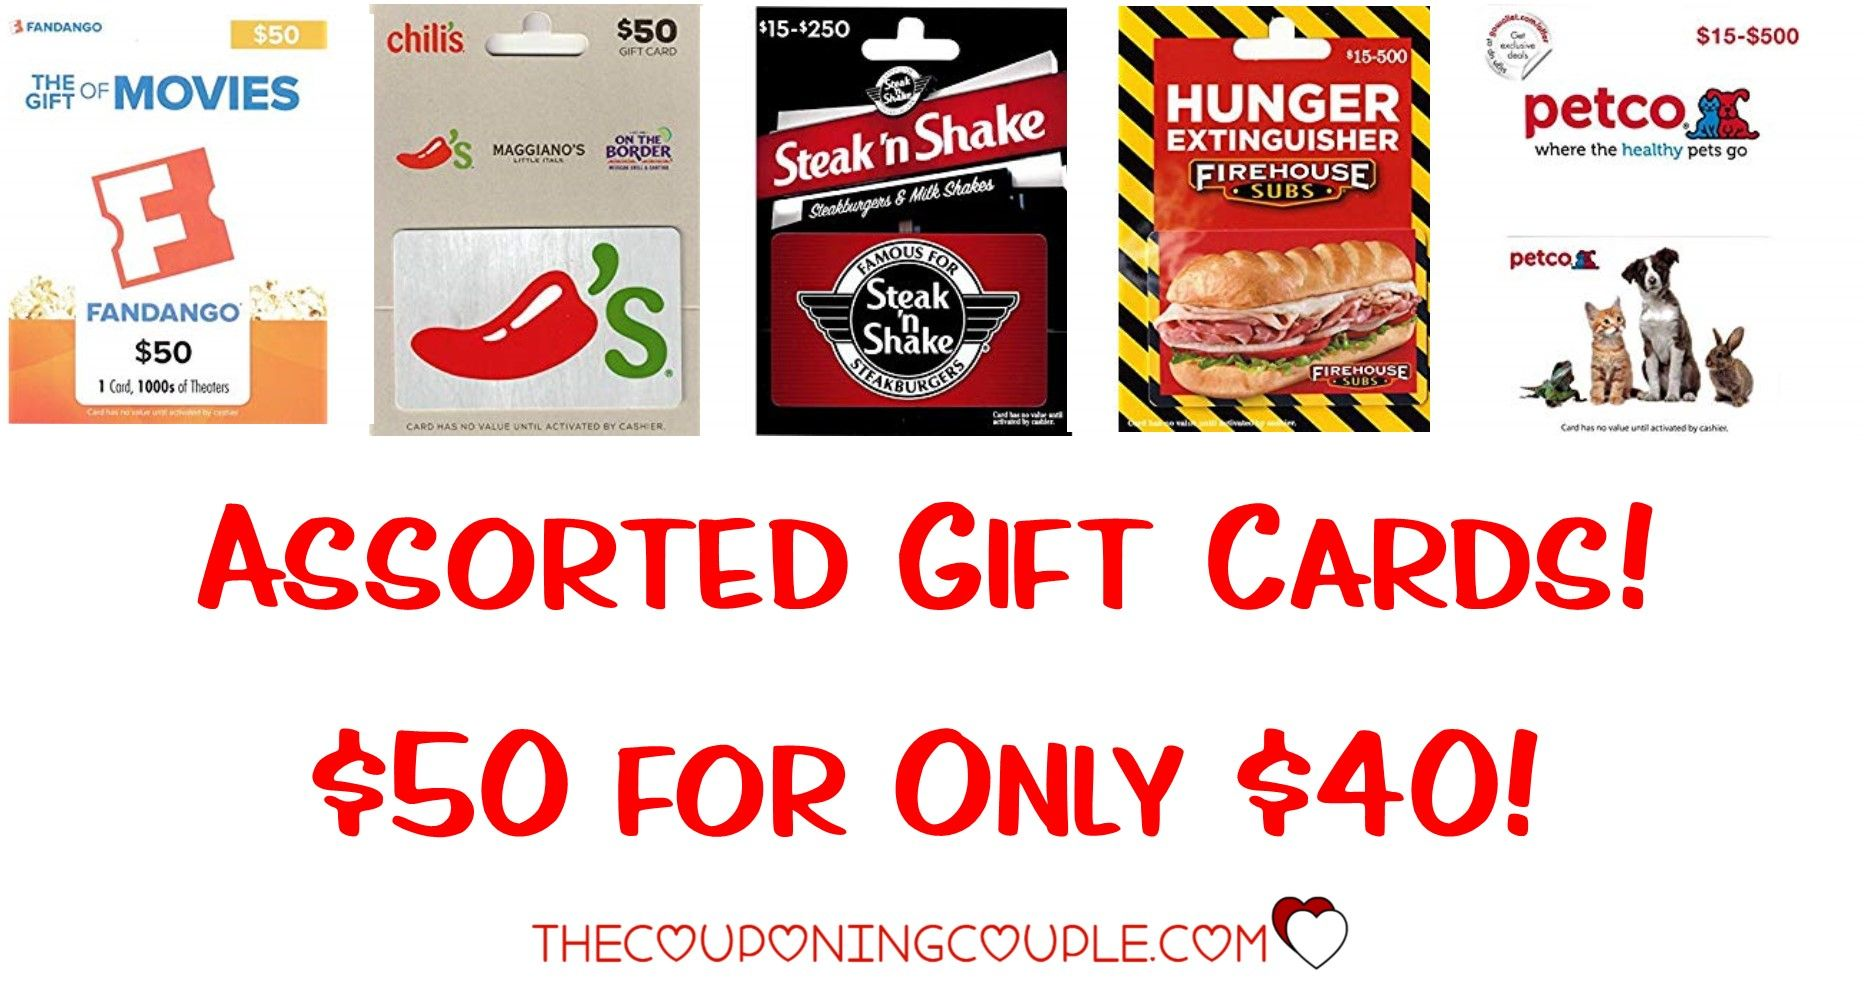 Assorted gift cards 50 gift cards for 40 fandango